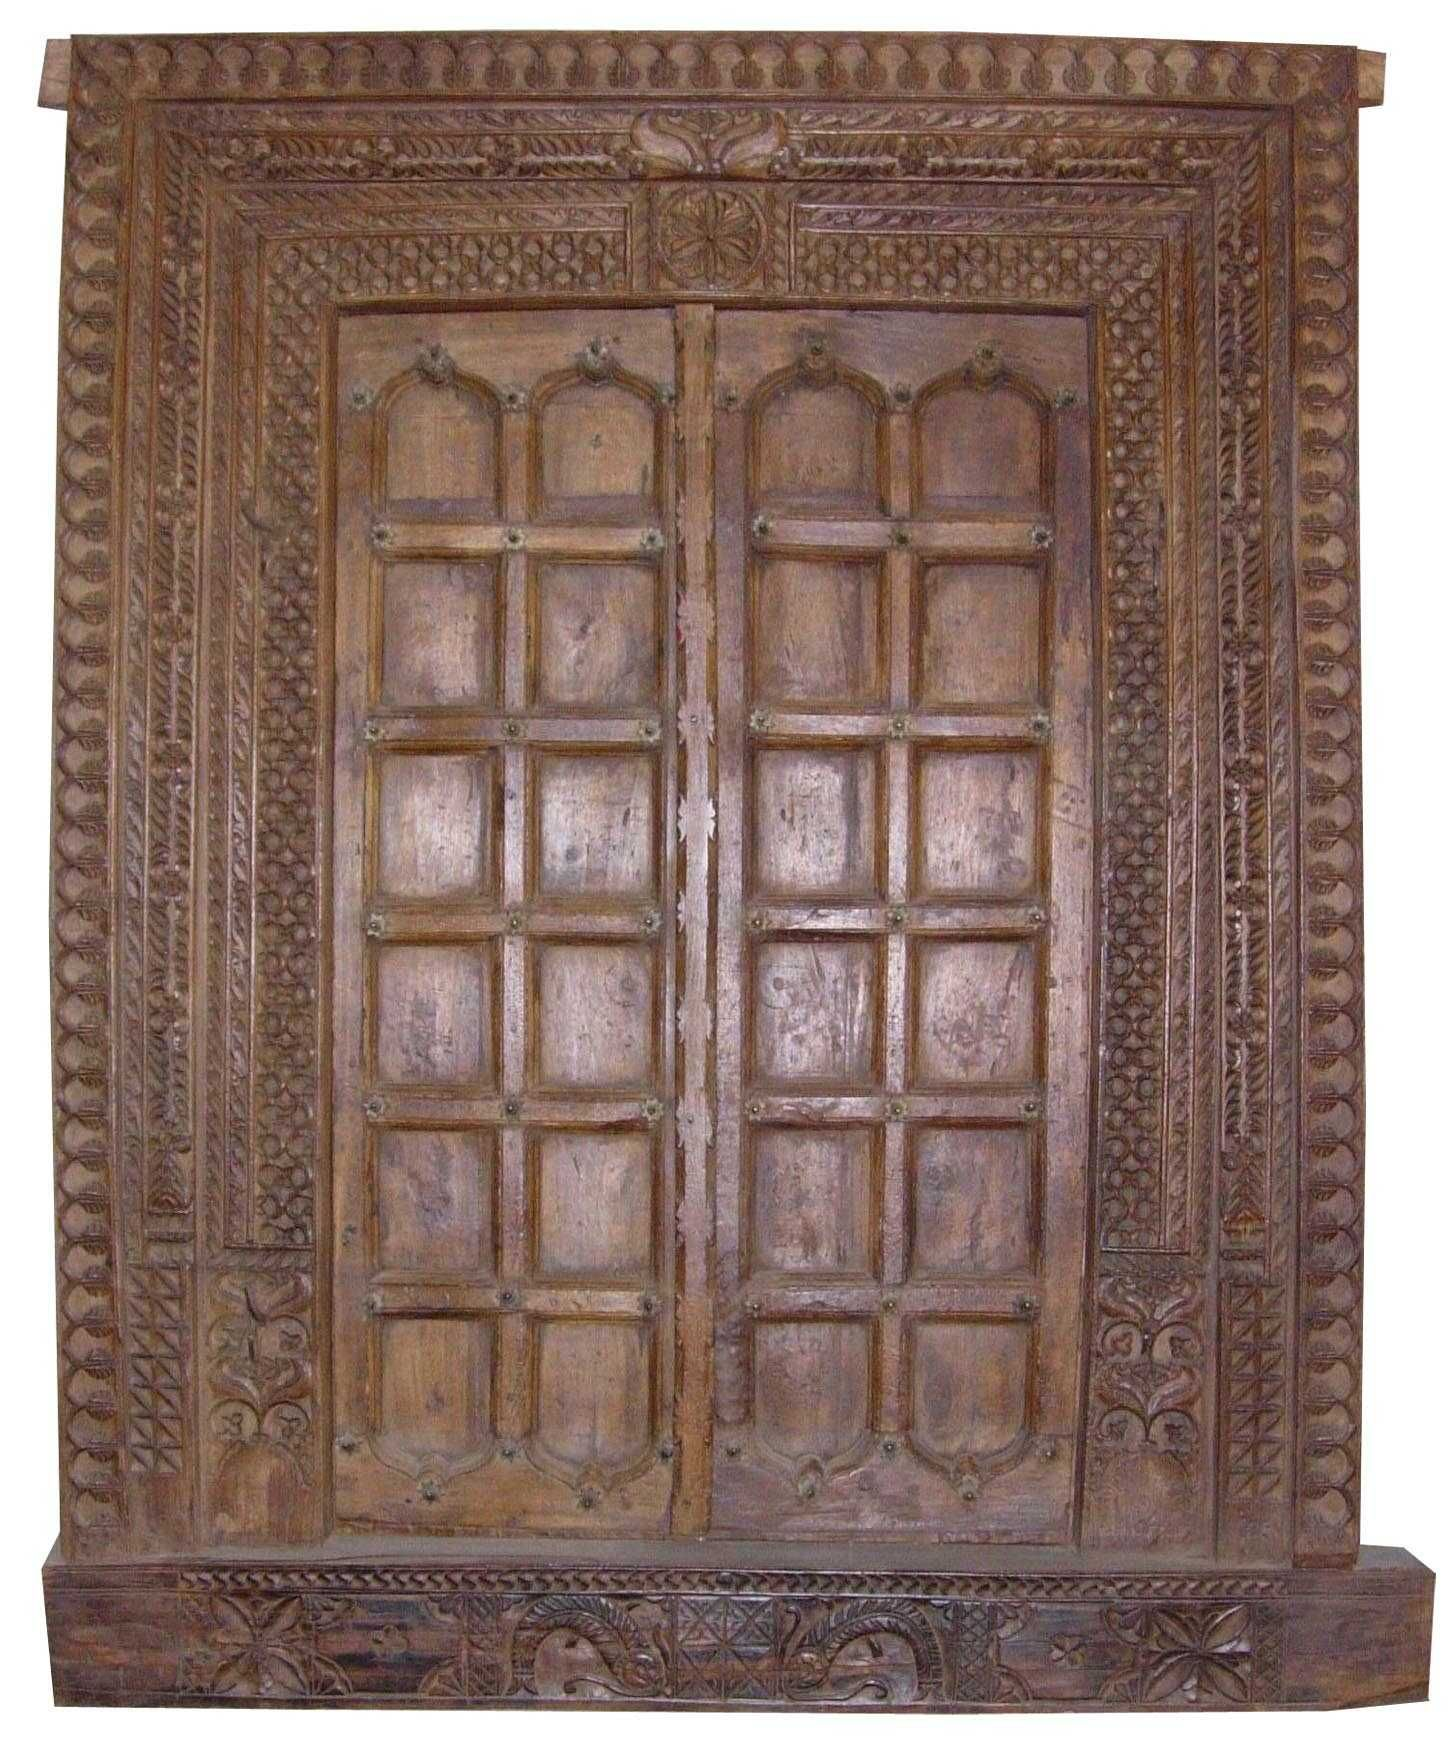 Pictures of different types of antiques wide antique wooden door pictures of different types of antiques wide antique wooden door collection many different types of rubansaba